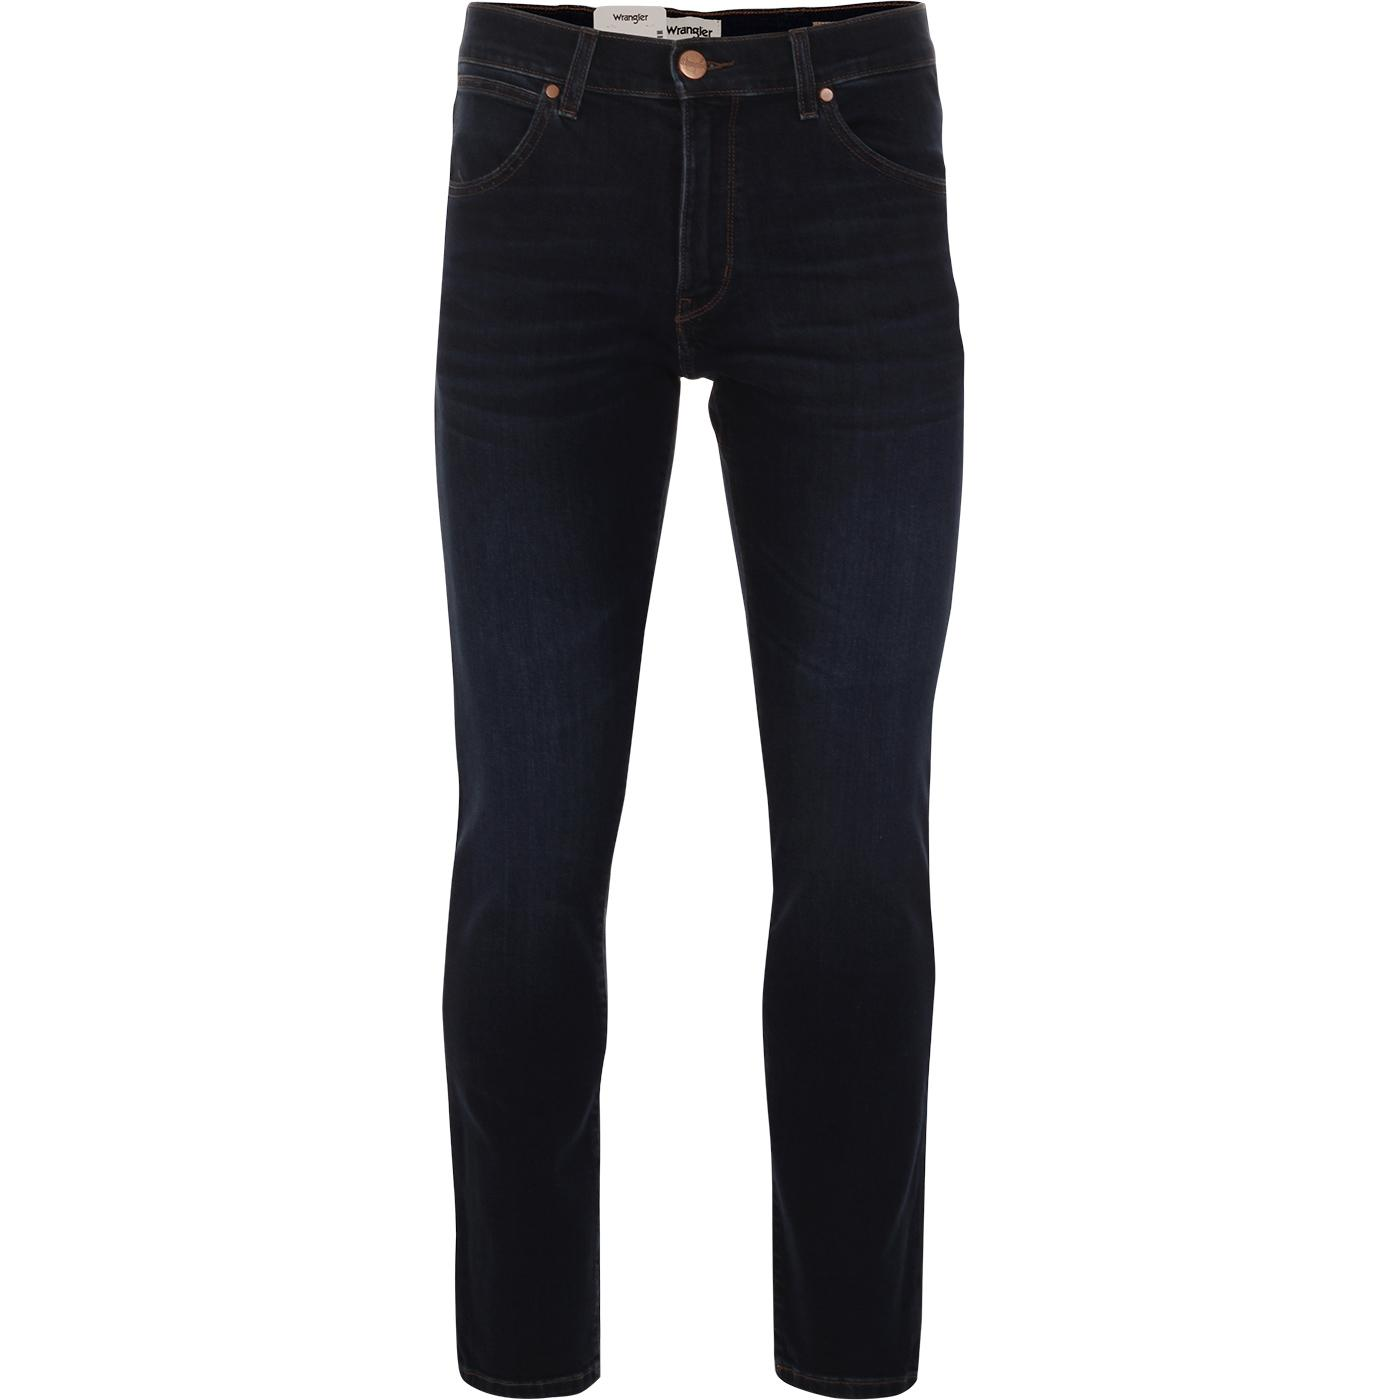 Larston WRANGLER Slim Tapered Denim Jeans SW